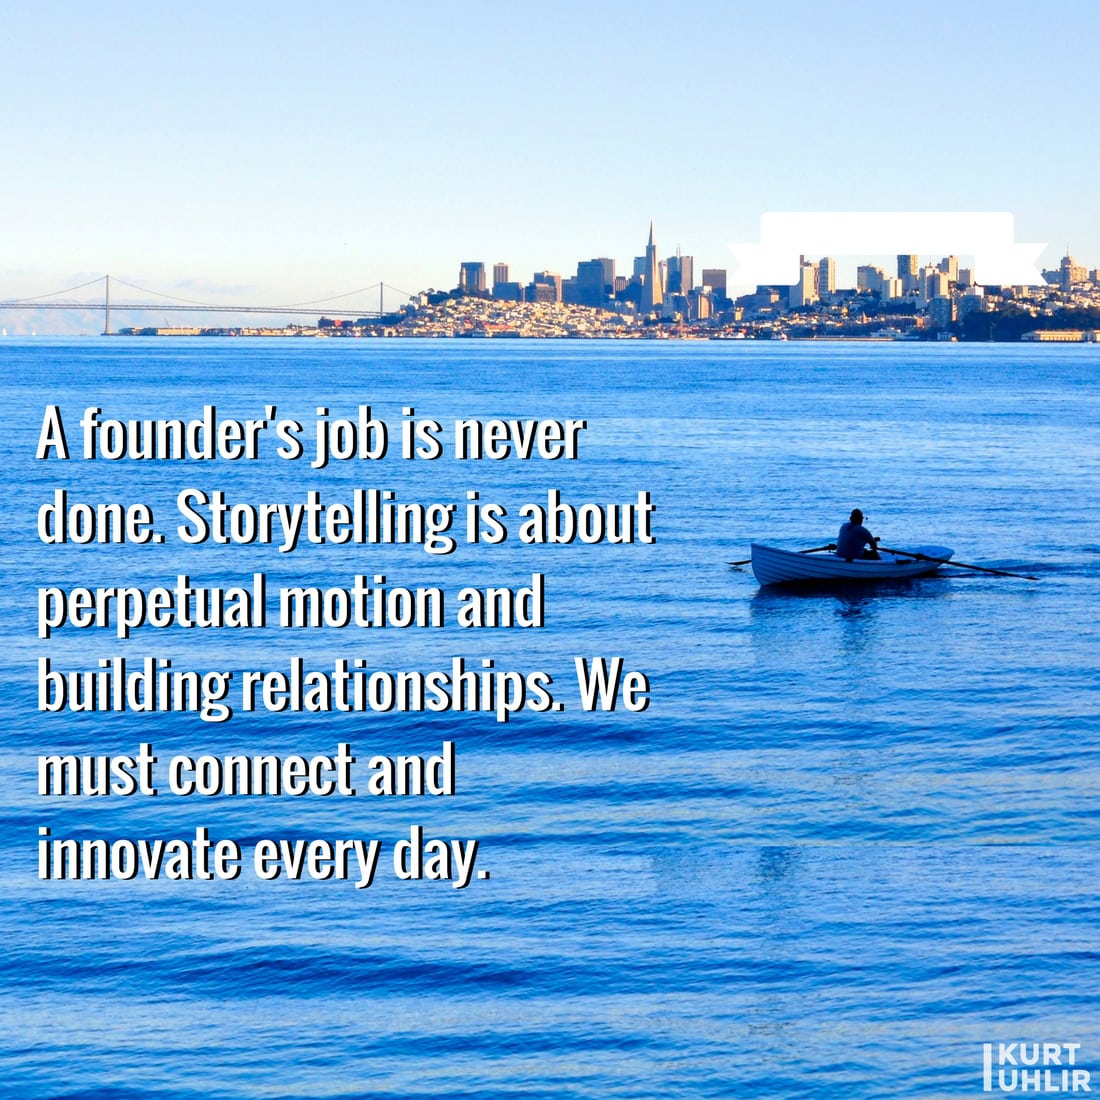 A founder's job is never done. Storytelling is about perpetual motion and building relationships. We must connect and innovate every day - Kurt Uhlir entrepreneur quote | Leadership | Motivation | Entrepreneurship | Founders